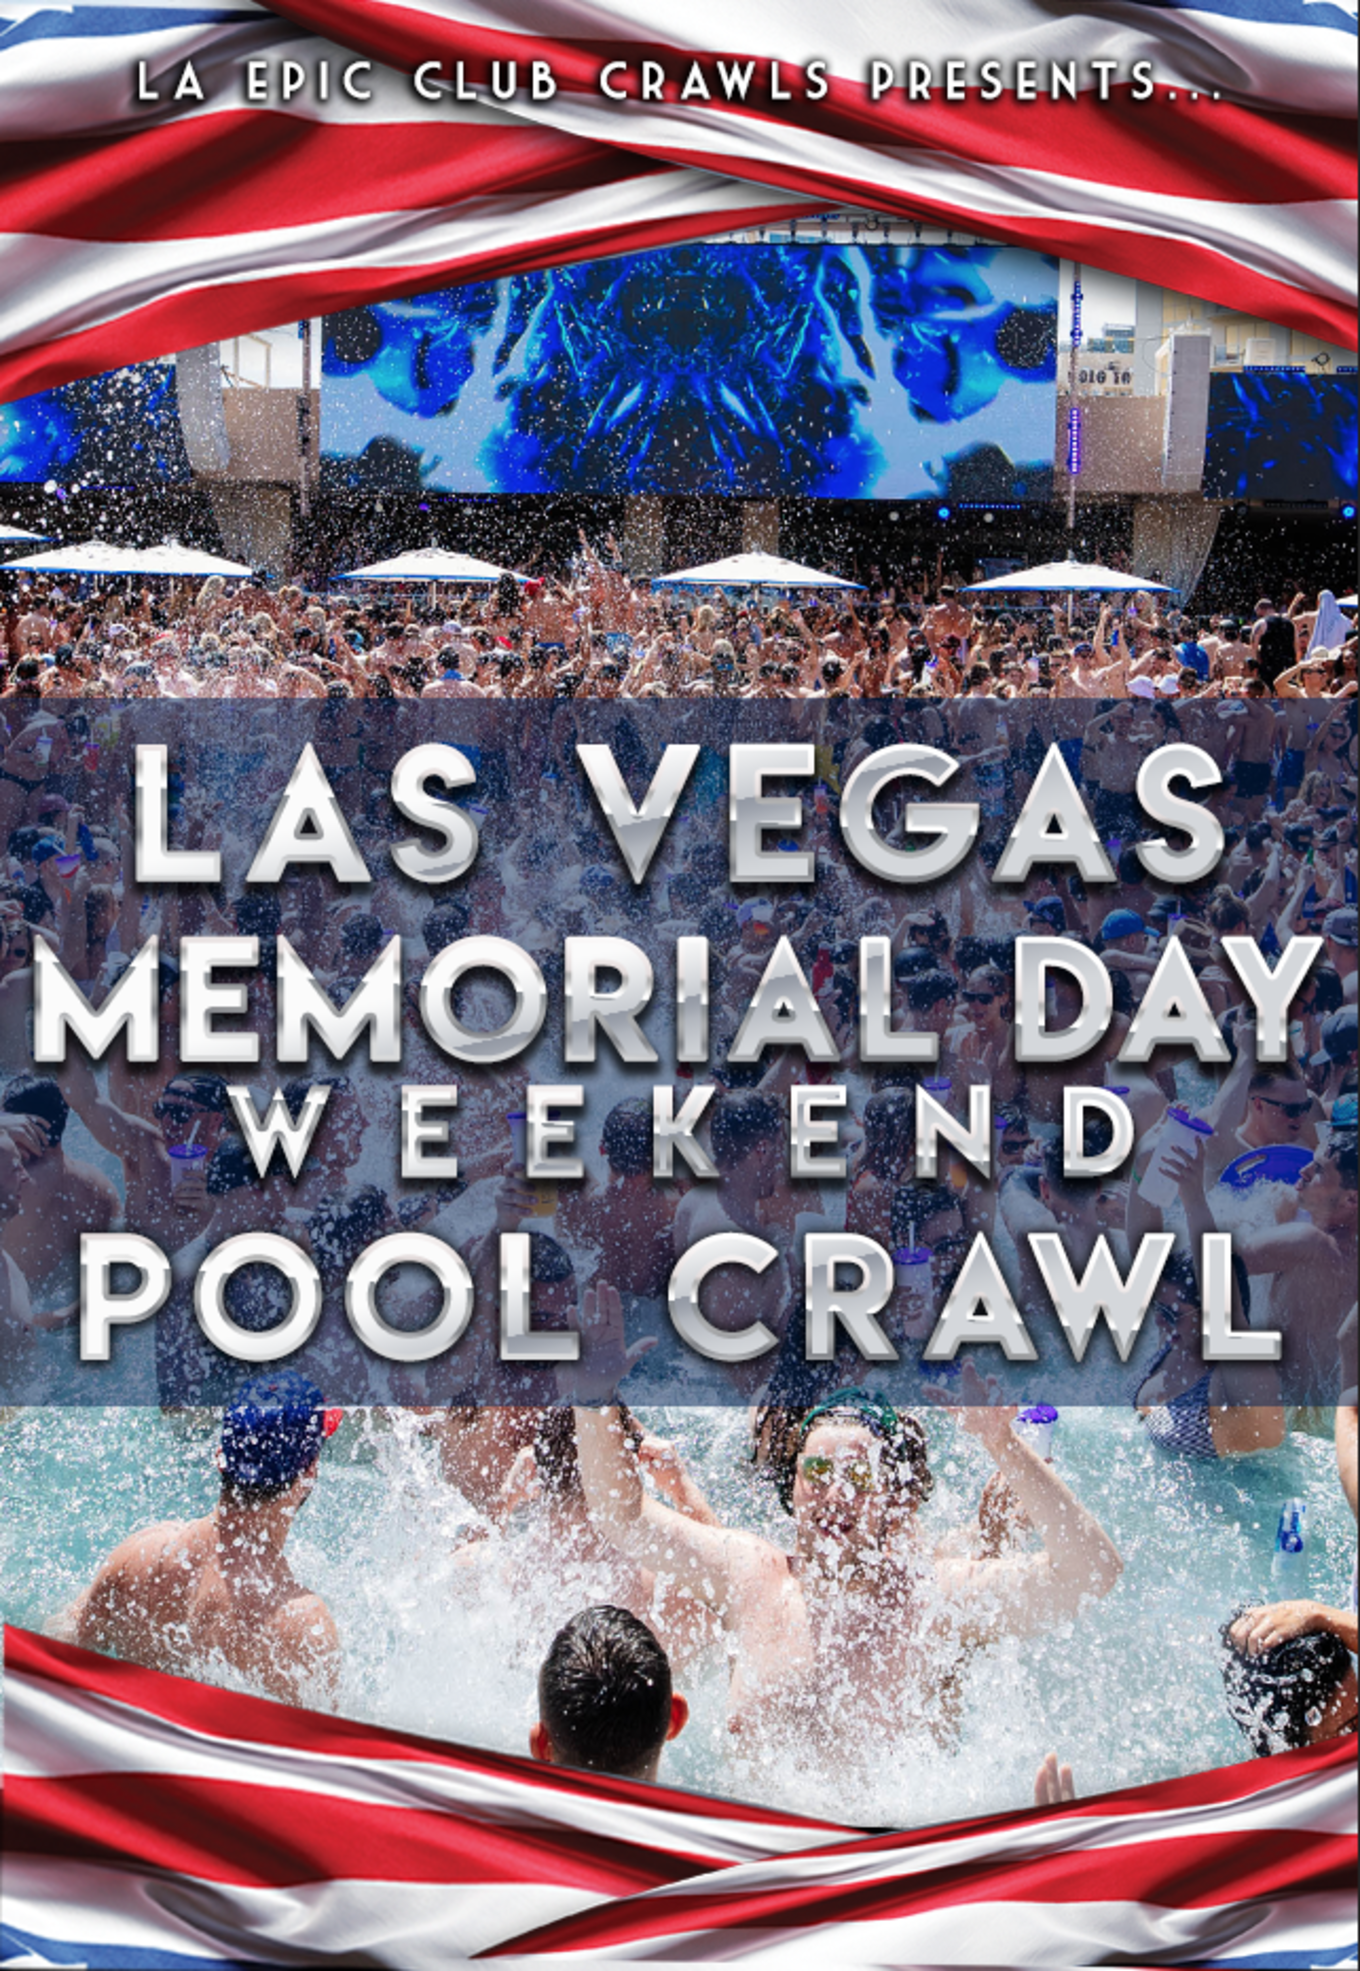 2019 Las Vegas Memorial Day Weekend Pool Crawl Tickets Tba Las